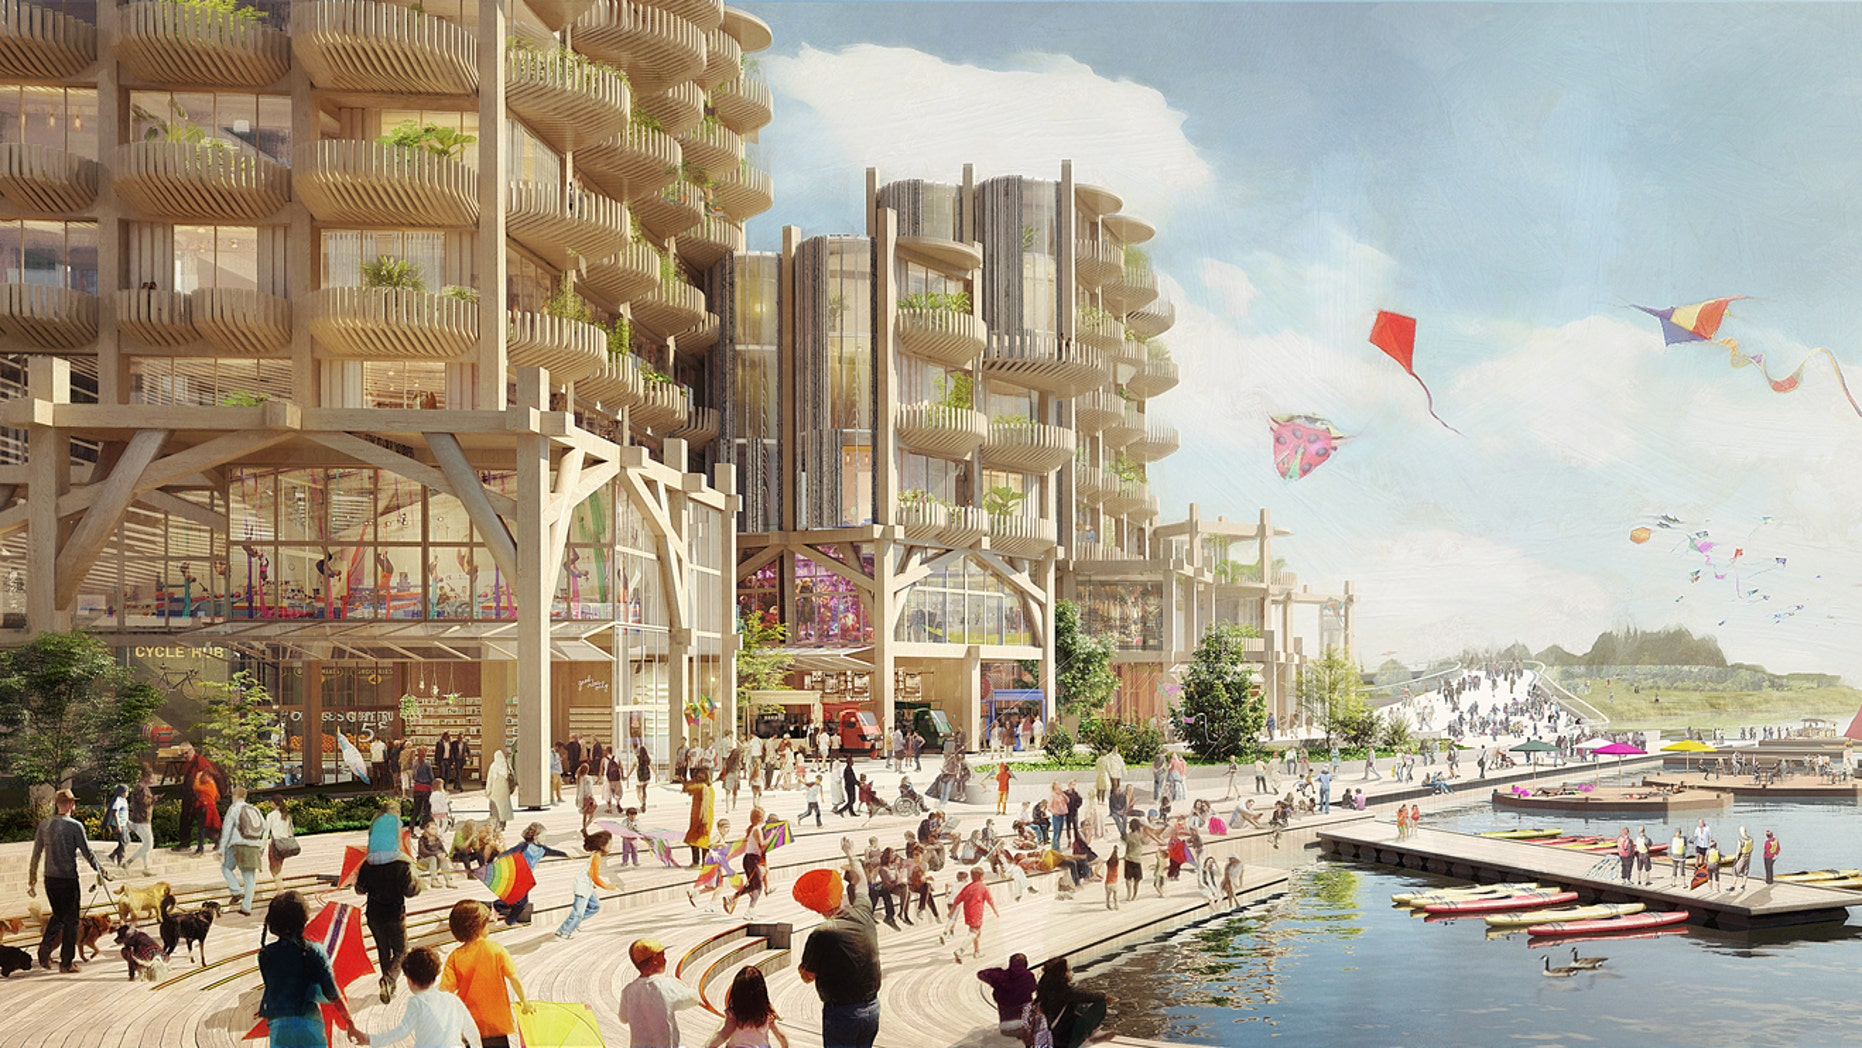 A rendering of Toronto's Parliament Slip during the summer. (Picture Plane for Heatherwick Studio for Sidewalk Labs)